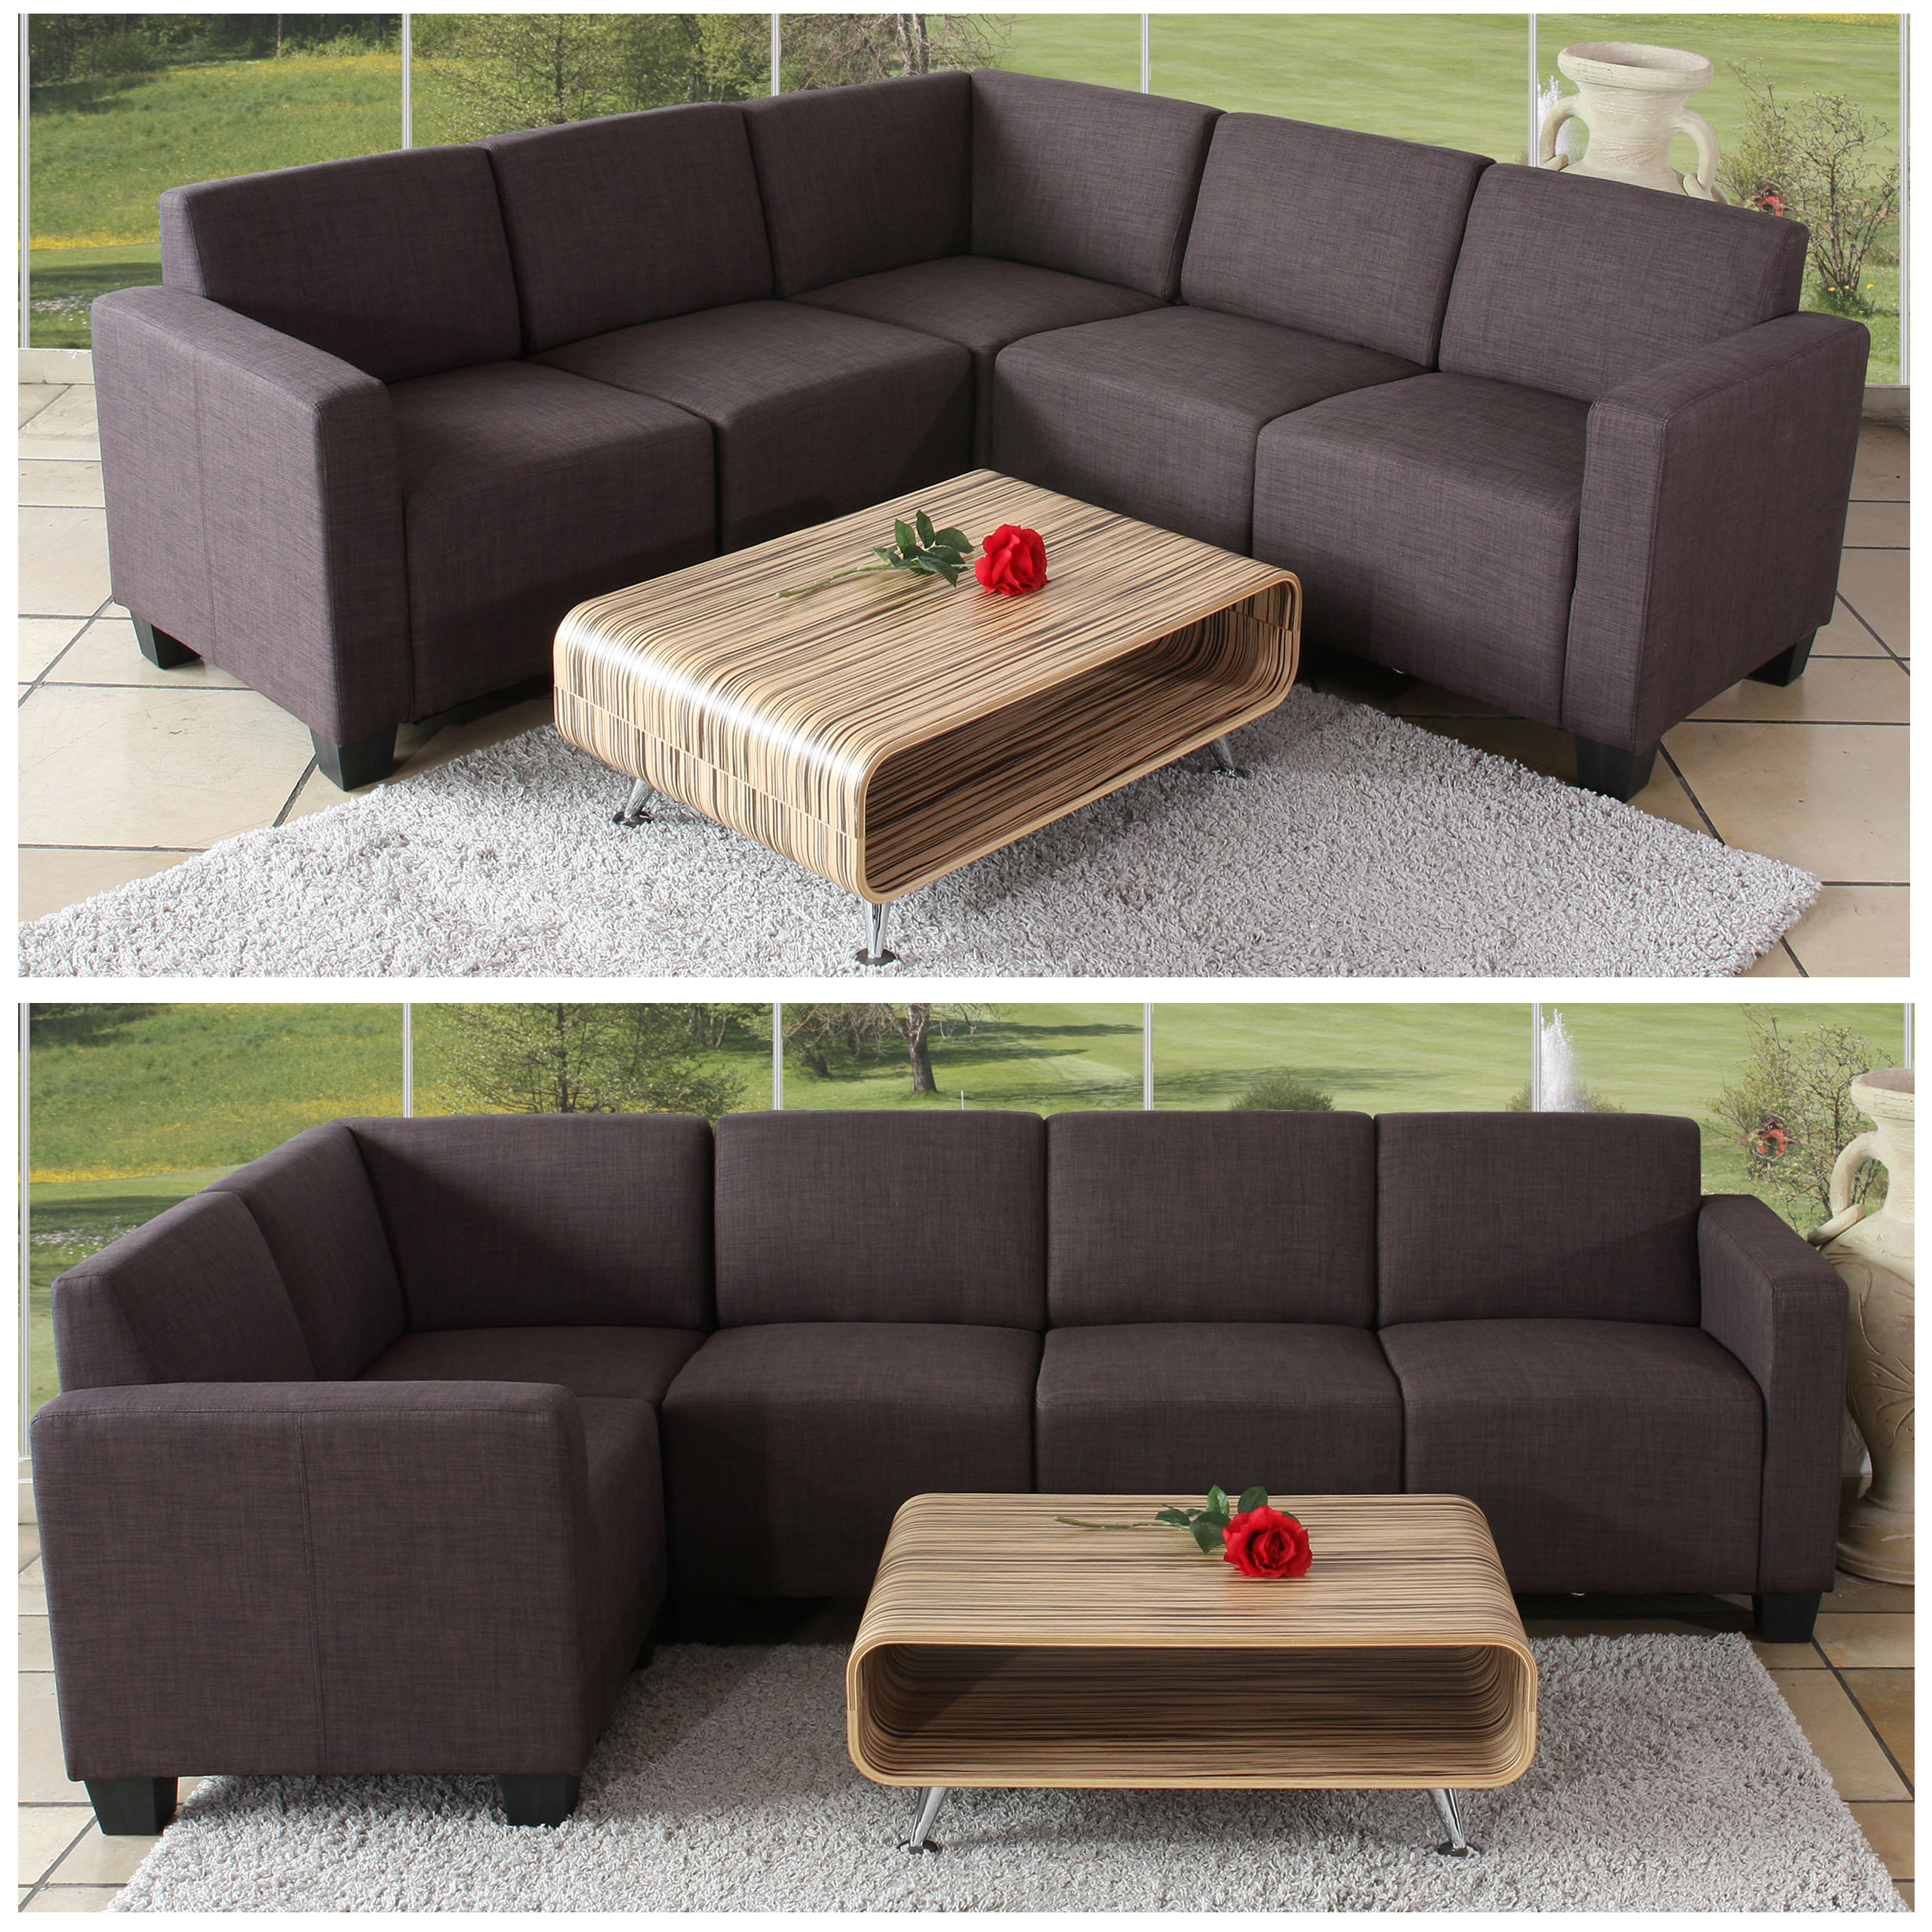 modular sofa system couch garnitur lyon 5 textil braun ebay. Black Bedroom Furniture Sets. Home Design Ideas